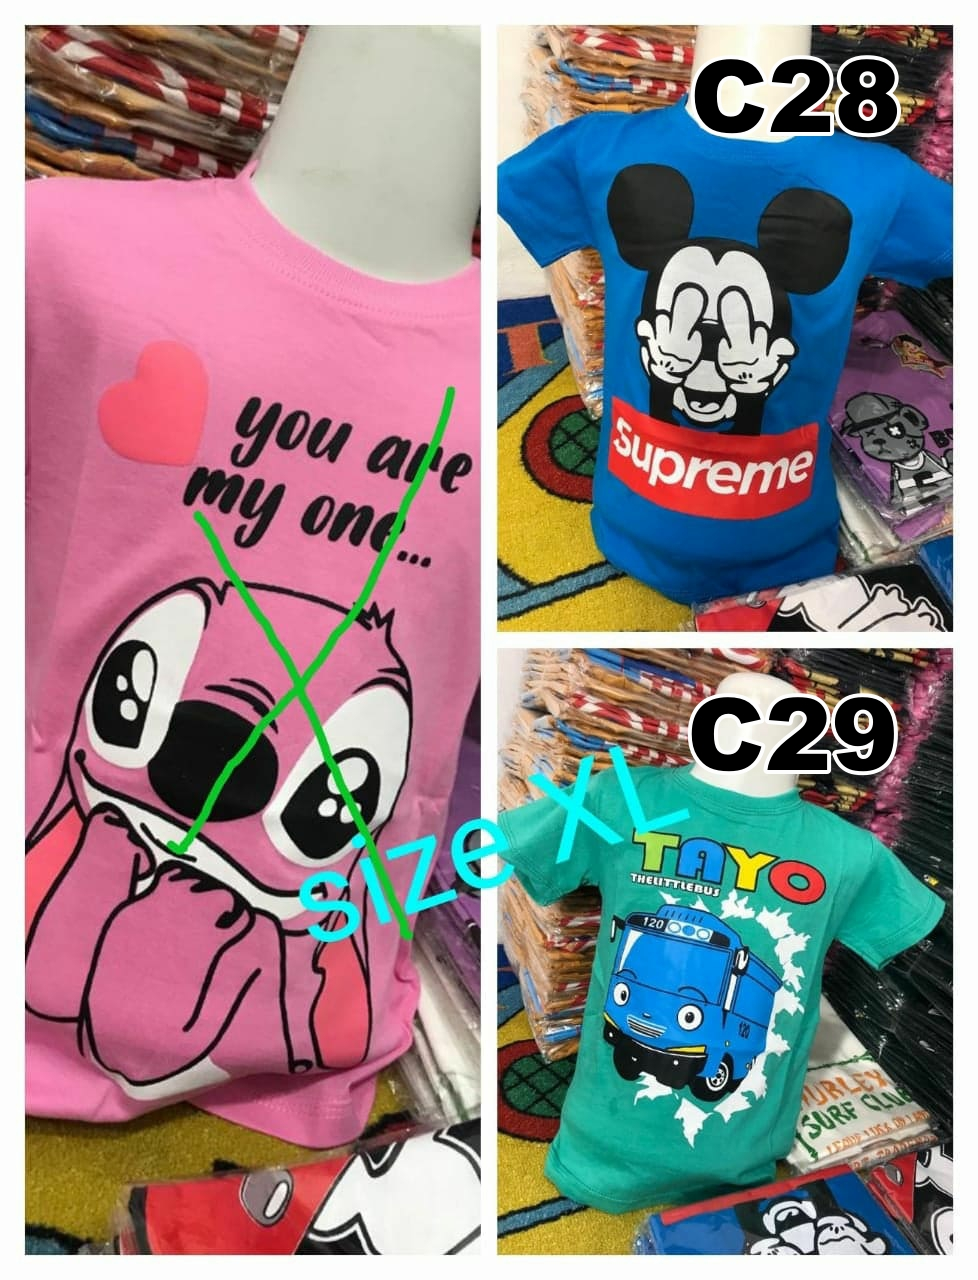 Kaos Distro Trend Anime Asli Ukuran XL Cotton Combed